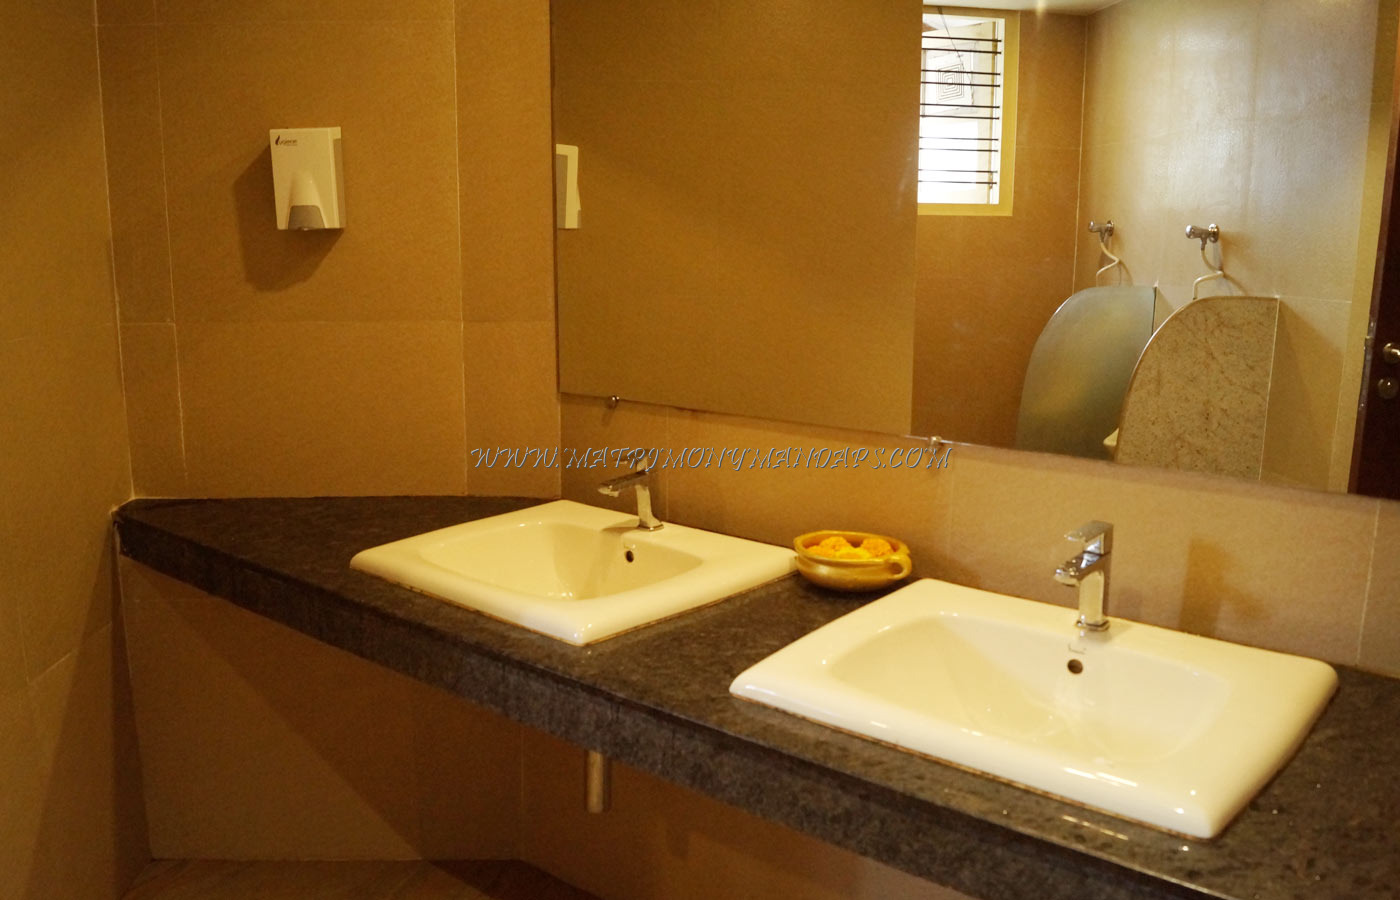 Find the availability of the Uday Samudra Leisure Beh Hotel - Aqua (A/C) in Kovalam, Trivandrum and avail special offers